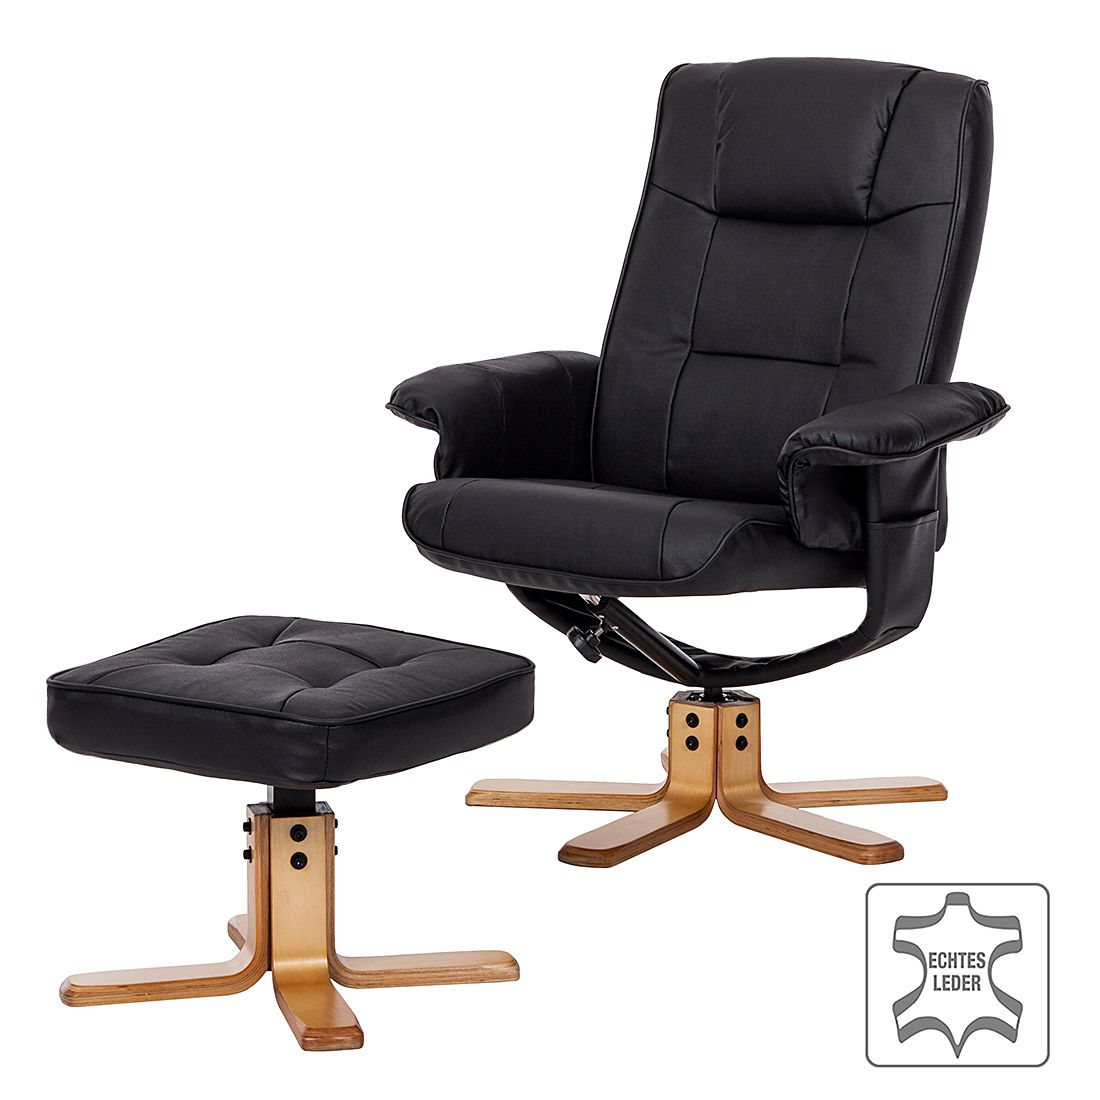 Fauteuil de relaxation Cosimo (avec repose-pieds) - Cuir synthétique noir, mooved